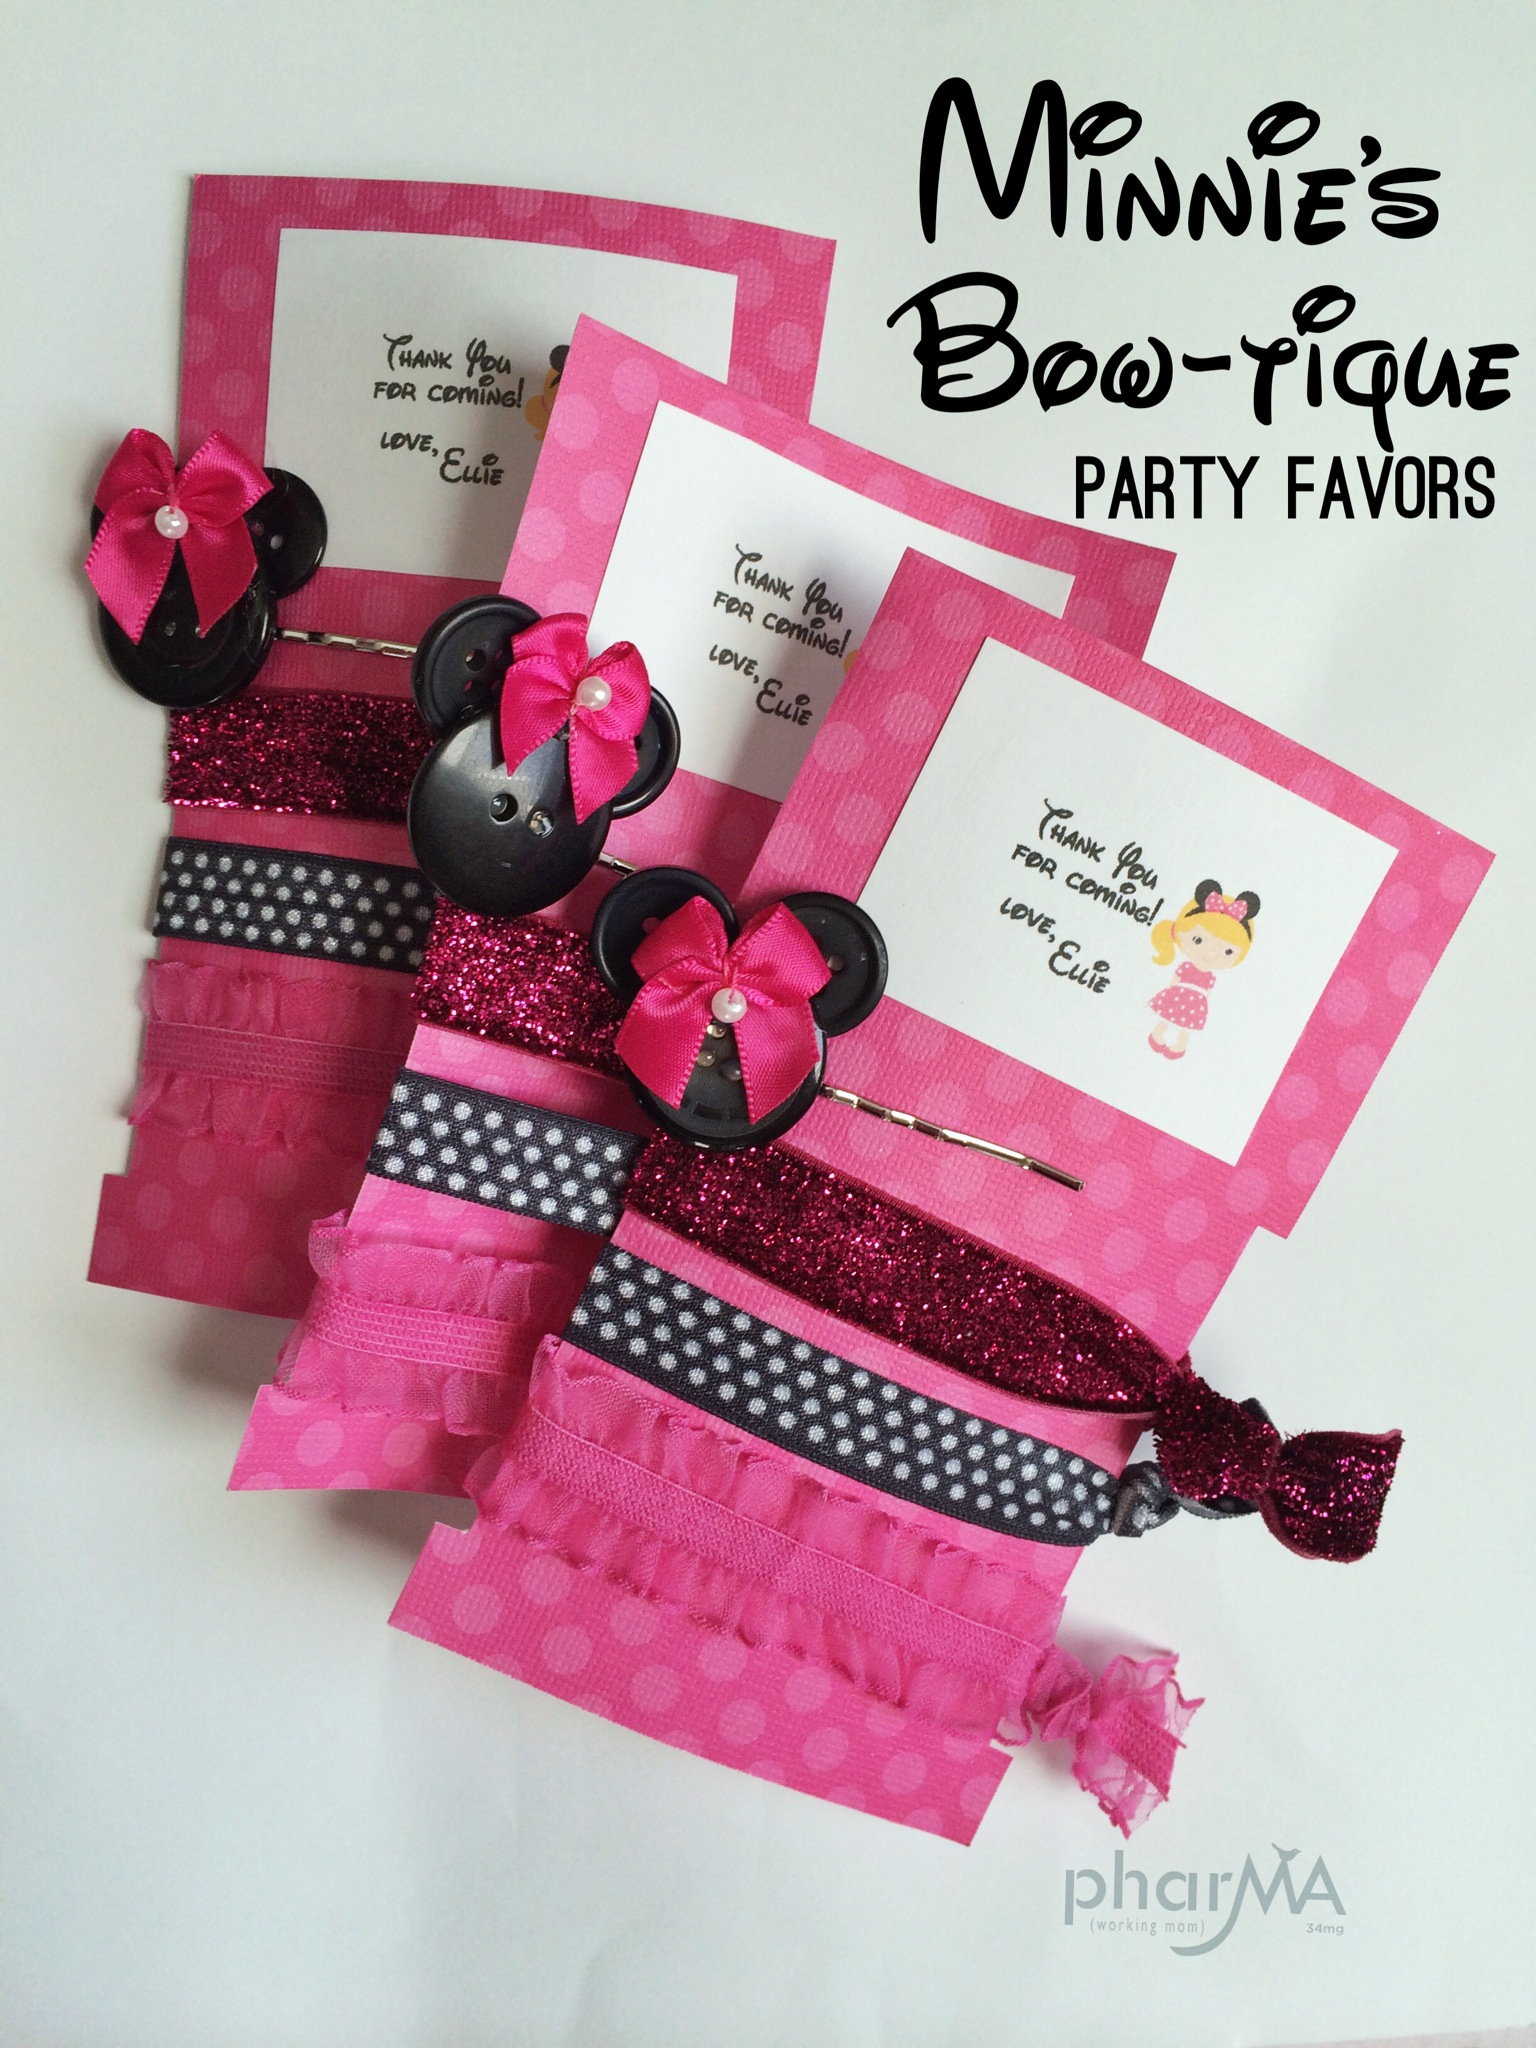 Minnie's Bow-tique Party Favors